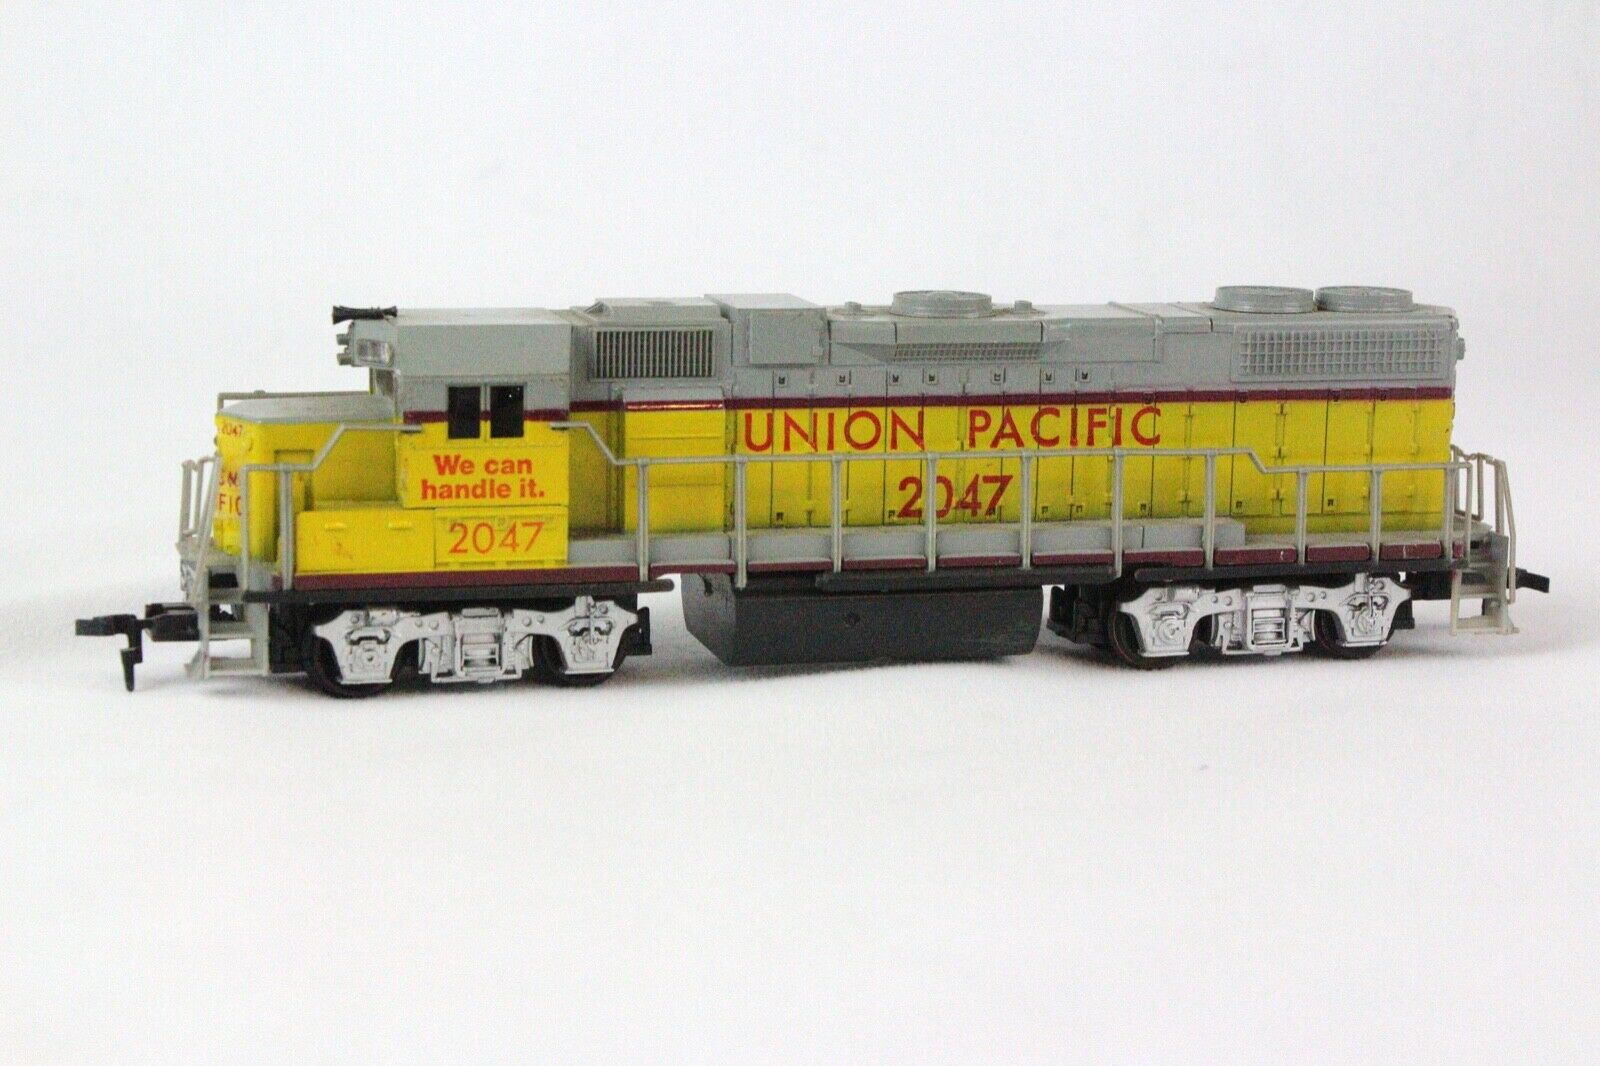 HO Scale - Life-Like - 2047 - Locomotive, Diesel, EMD GP38-2 - Union Pacific - 2047